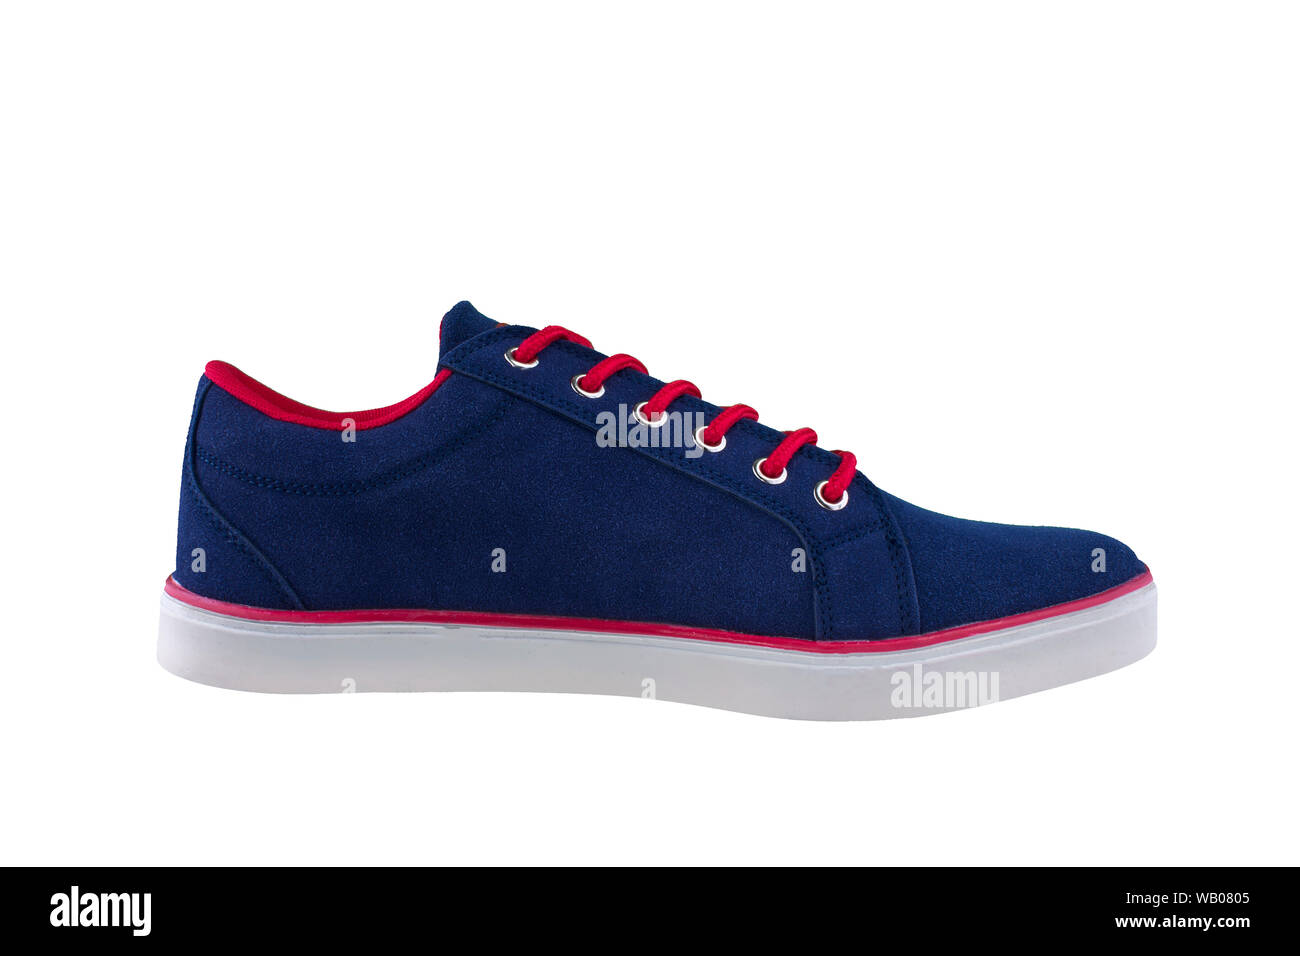 Sneakers. Sports shoes side view on a